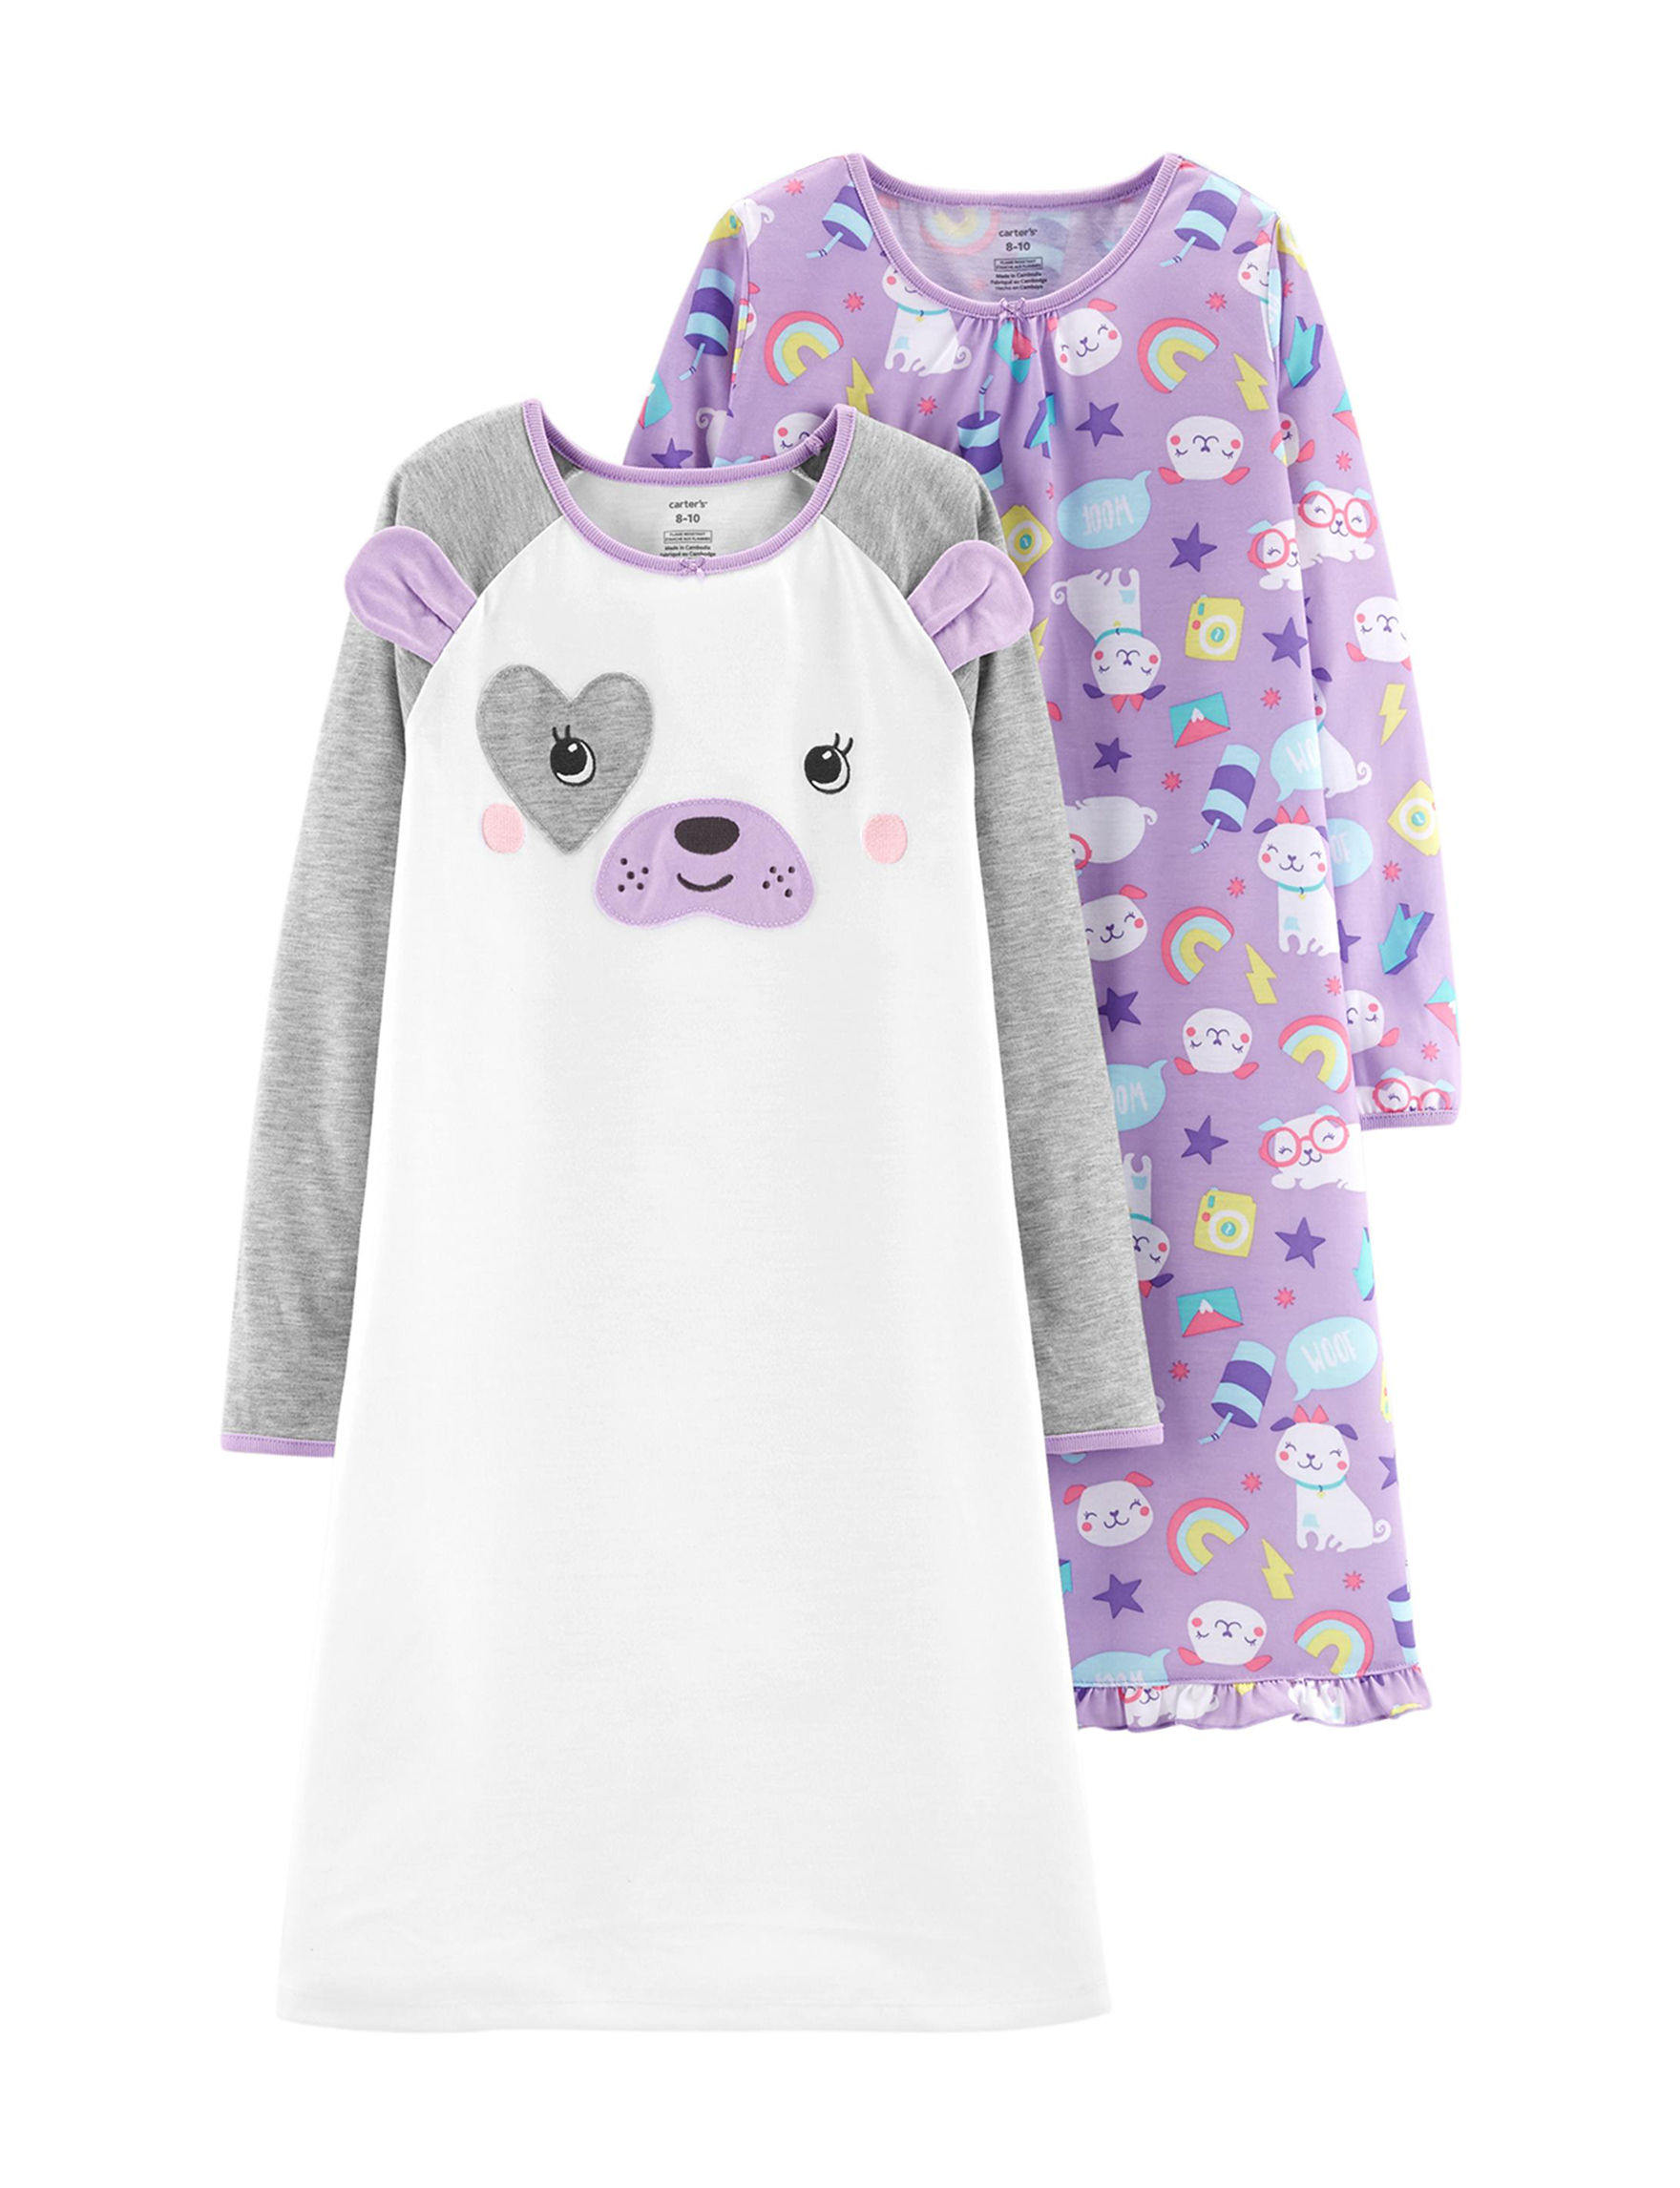 Carter's White / Purple Nightgowns & Sleep Shirts